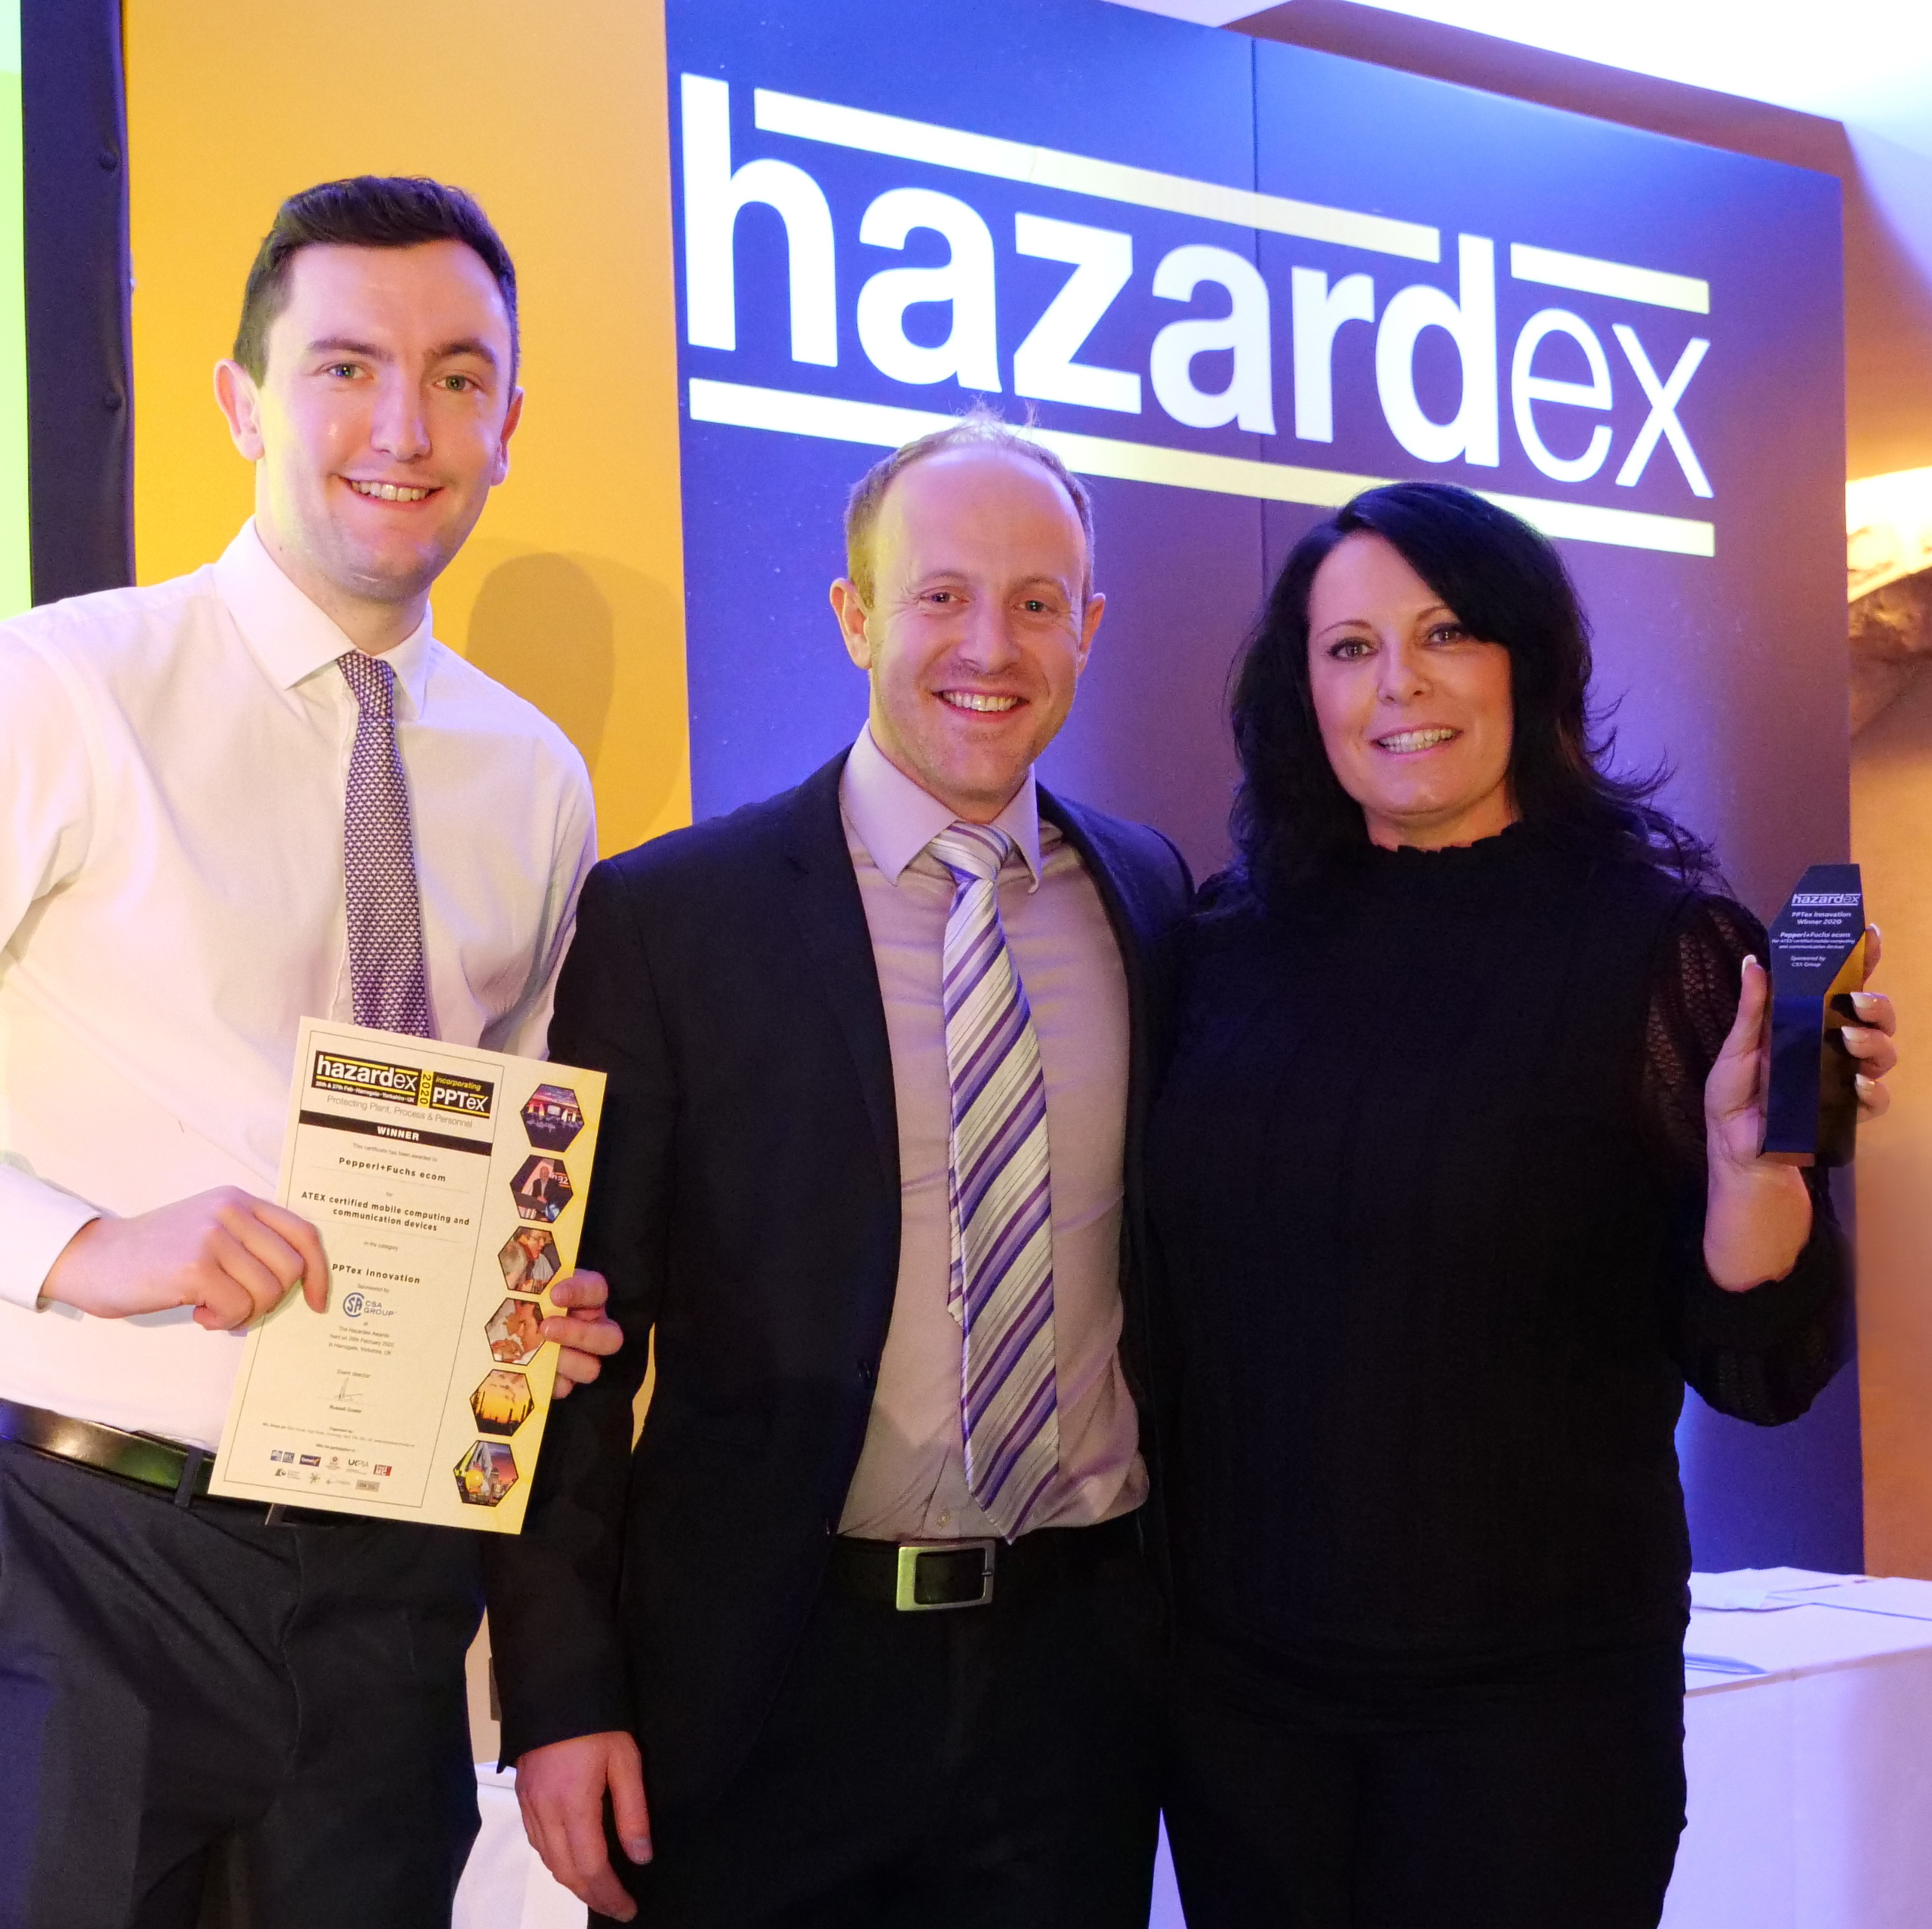 Adam Garner, Commercial Director of the CSA Group (middle) pictured with Karen Jarrett and Max Begley from Pepperl+Fuchs.